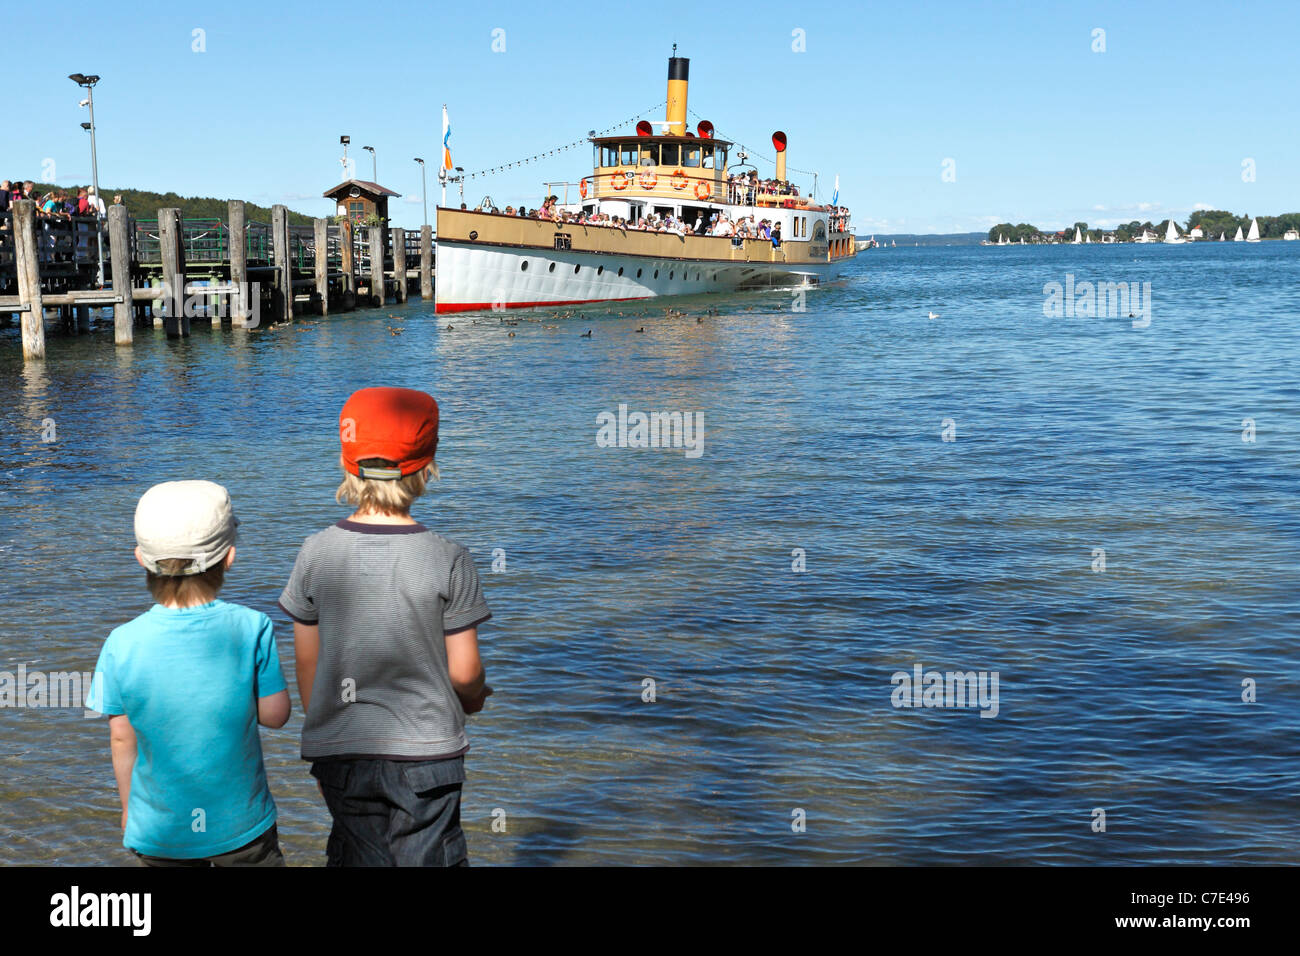 Children on foreshore watching a Chiemsee Ferry Boat at the Herreninsel, Chiemgau Upper Bavaria Germany - Stock Image